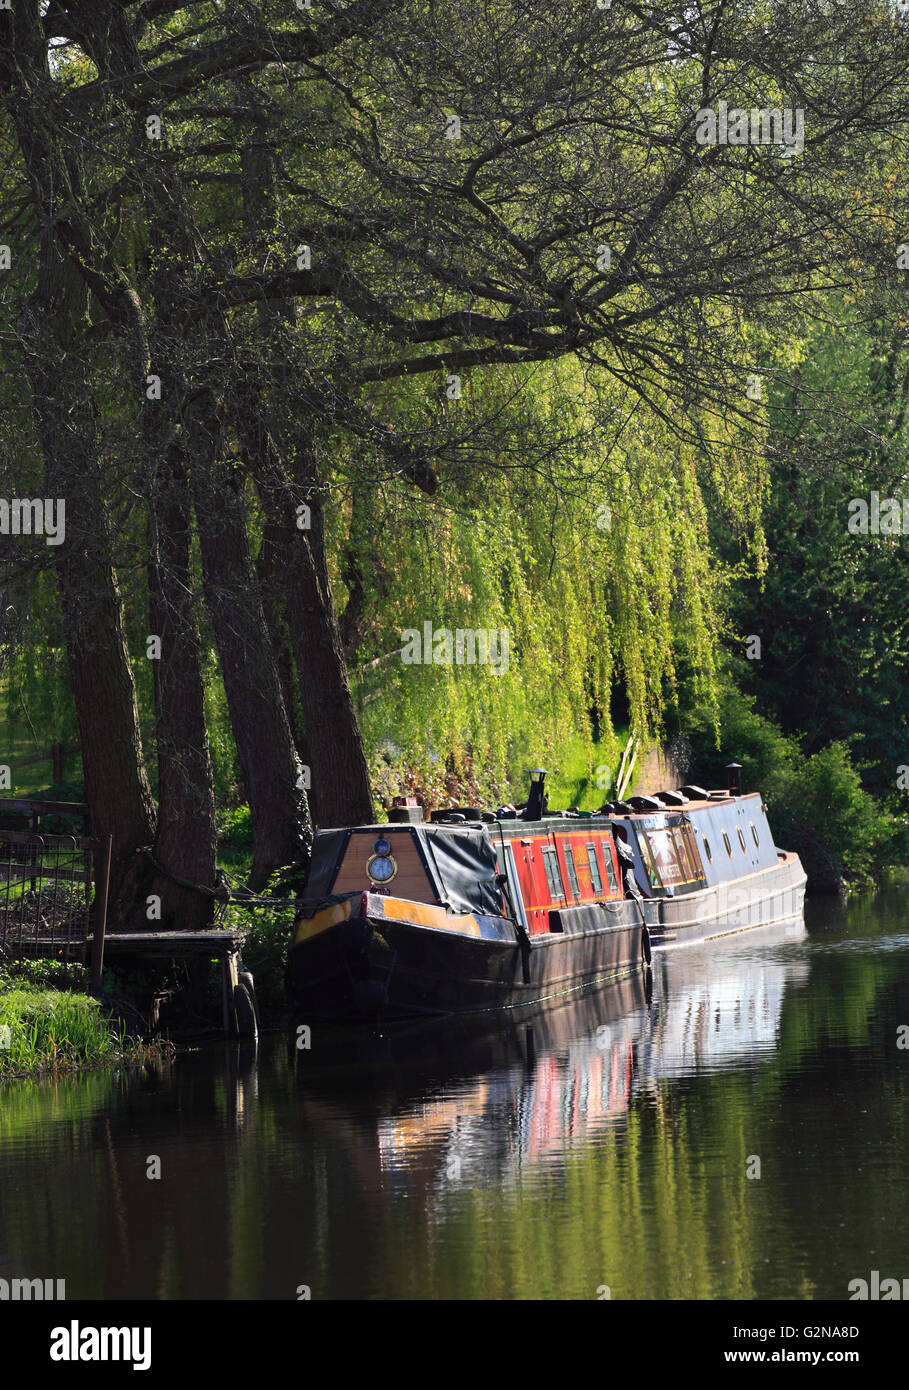 Narrowboats moored near Cookley on the Staffordshire and Worcestershire canal, Worcestershire, England, Europe Stock Photo